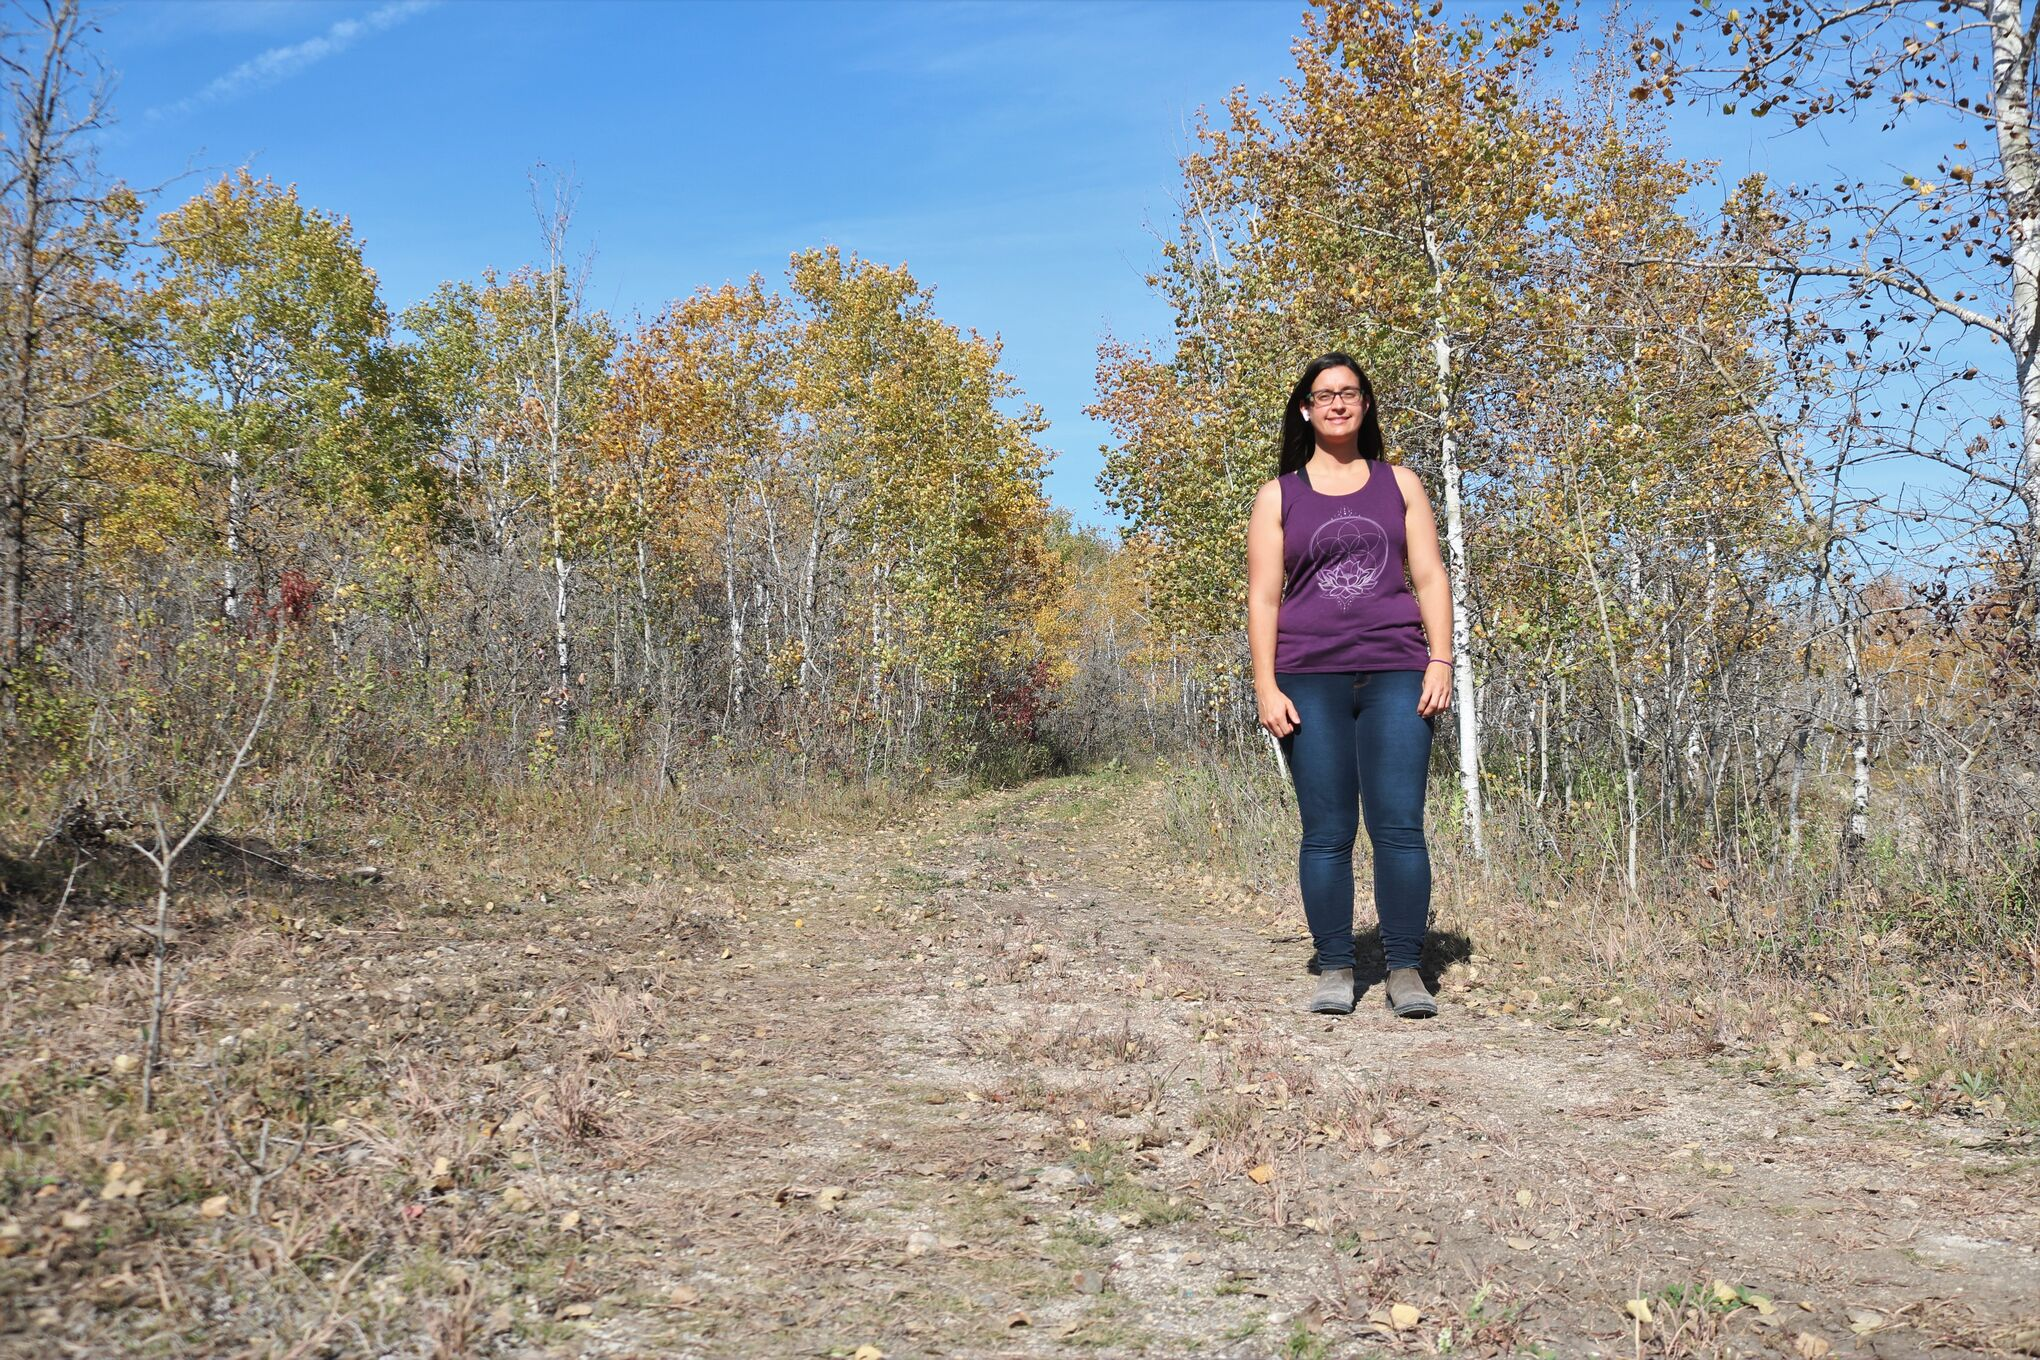 RM of Tache Recreation Manager Lisa Woods at the site of the Monominto Hiking Trail, a three-trail system in Ste Genevieve set to open at the end of the month.